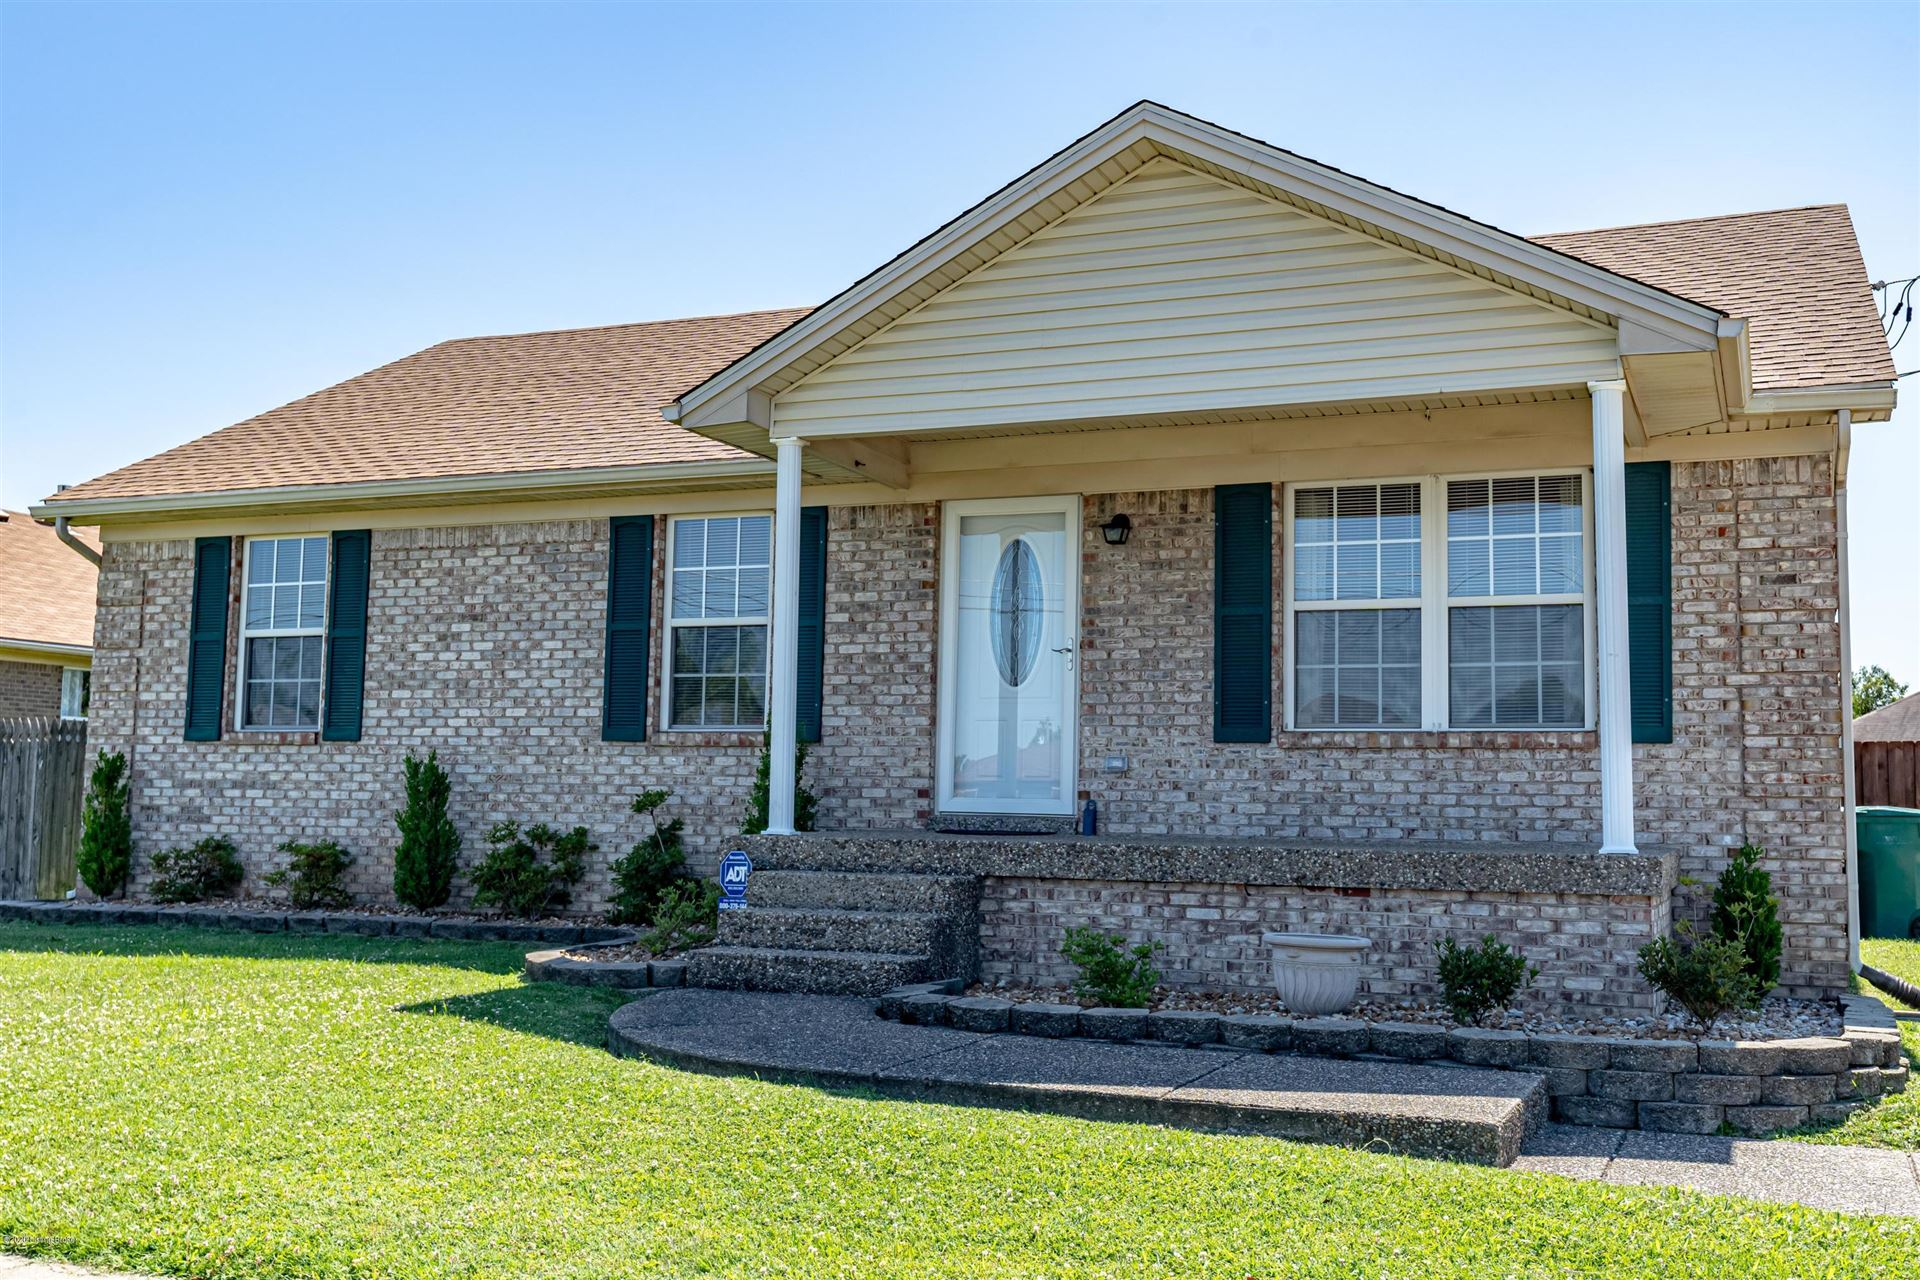 Property Image Of 210 Smith Ln In Louisville, Ky